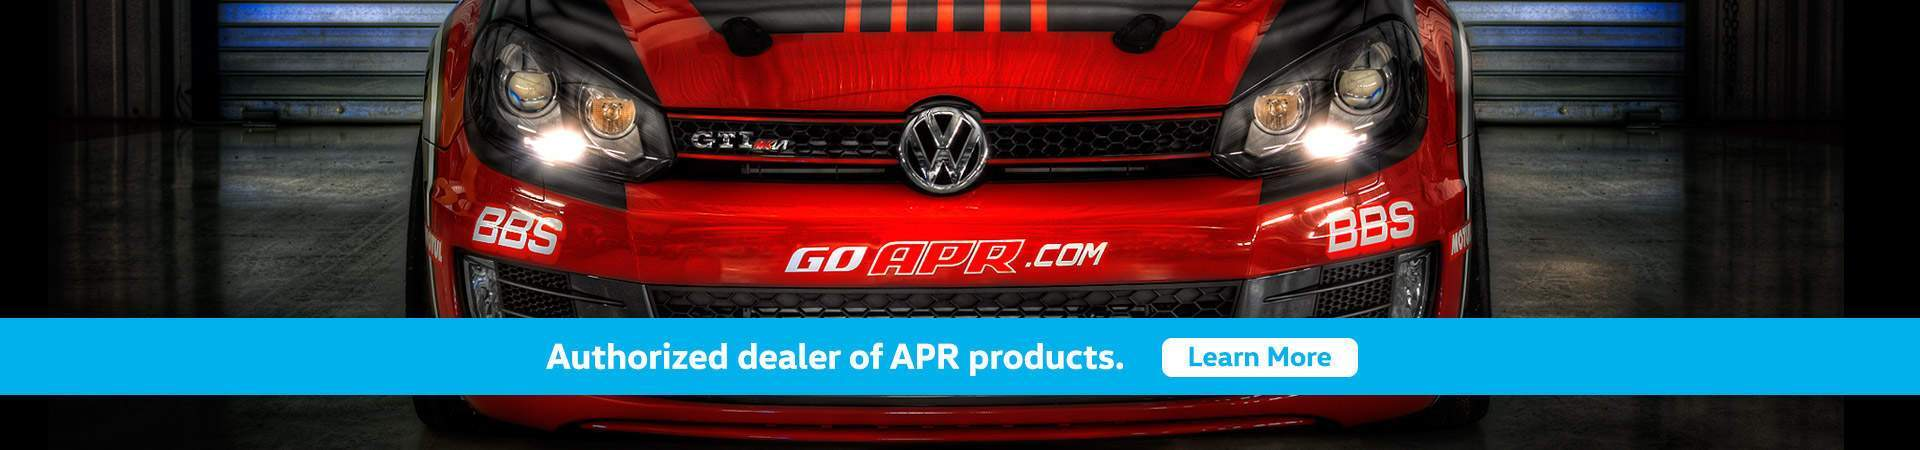 Authorized dealer of APR products